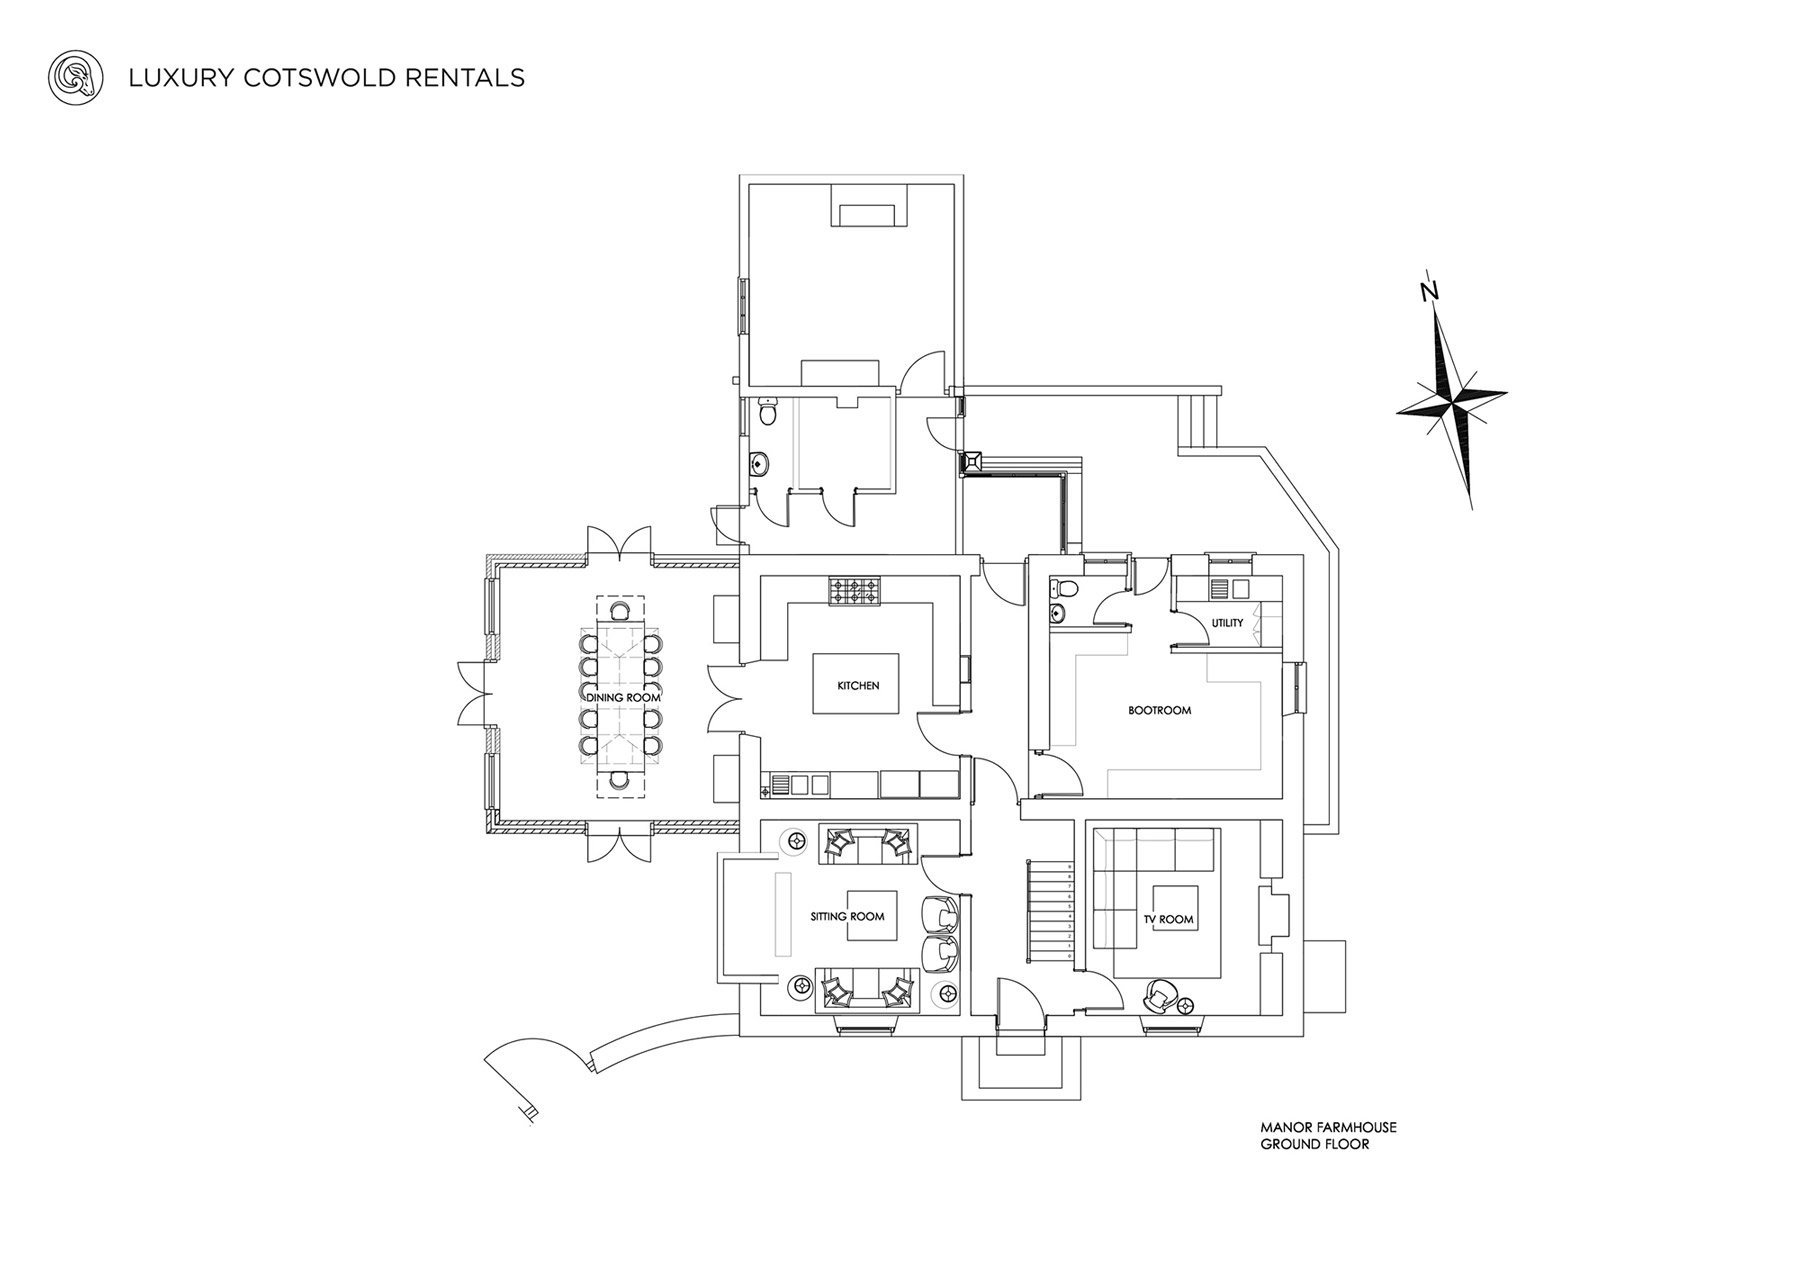 View the floorplan of Manor Farmhouse Conderton